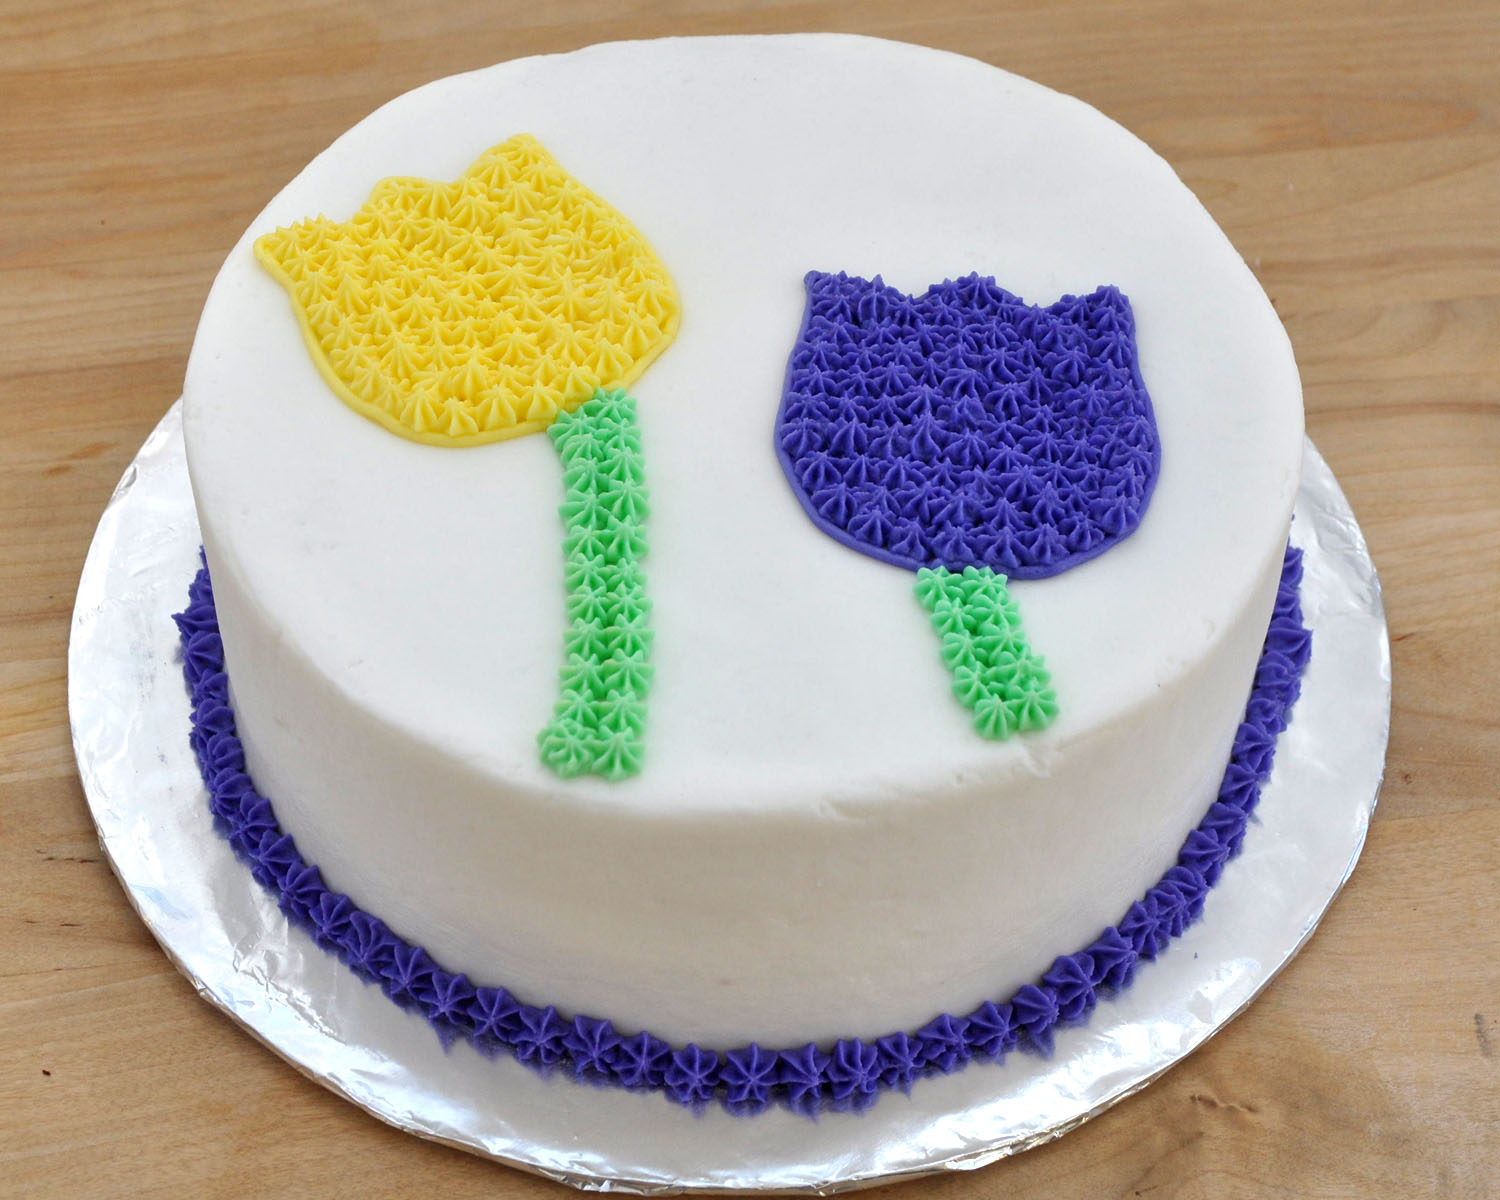 Cake Decoration Simple : Beki Cook s Cake Blog: Cake Decorating 101 - Easy Birthday ...